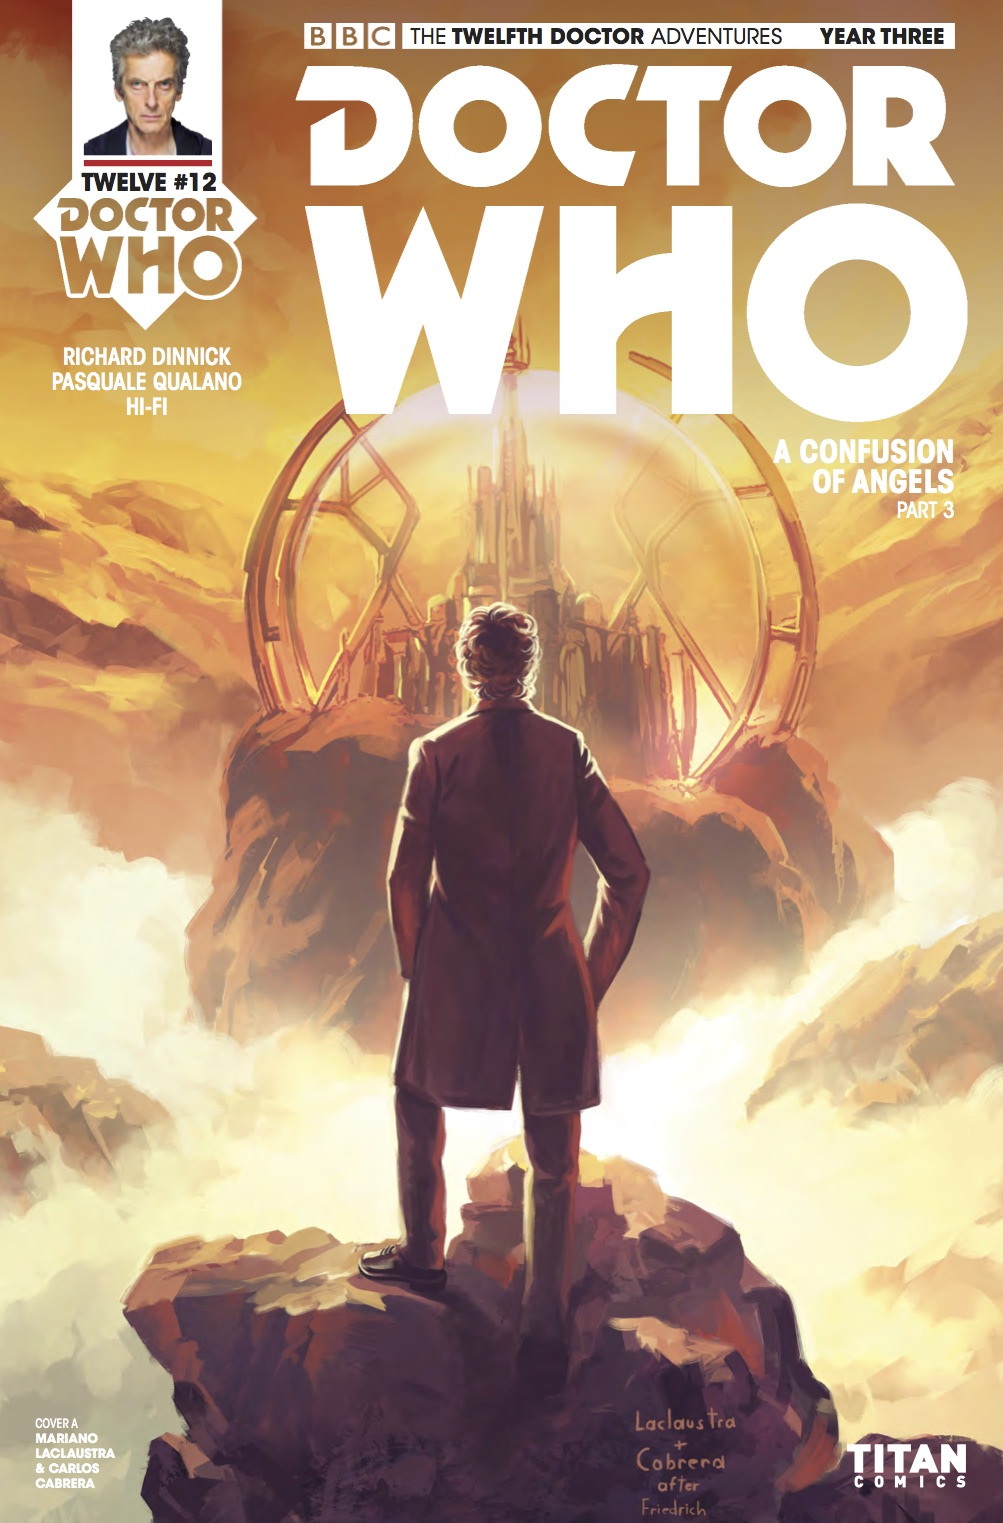 Doctor Who: Twelfth Doctor - Year Three #12 - Cover A (Credit: Titan )